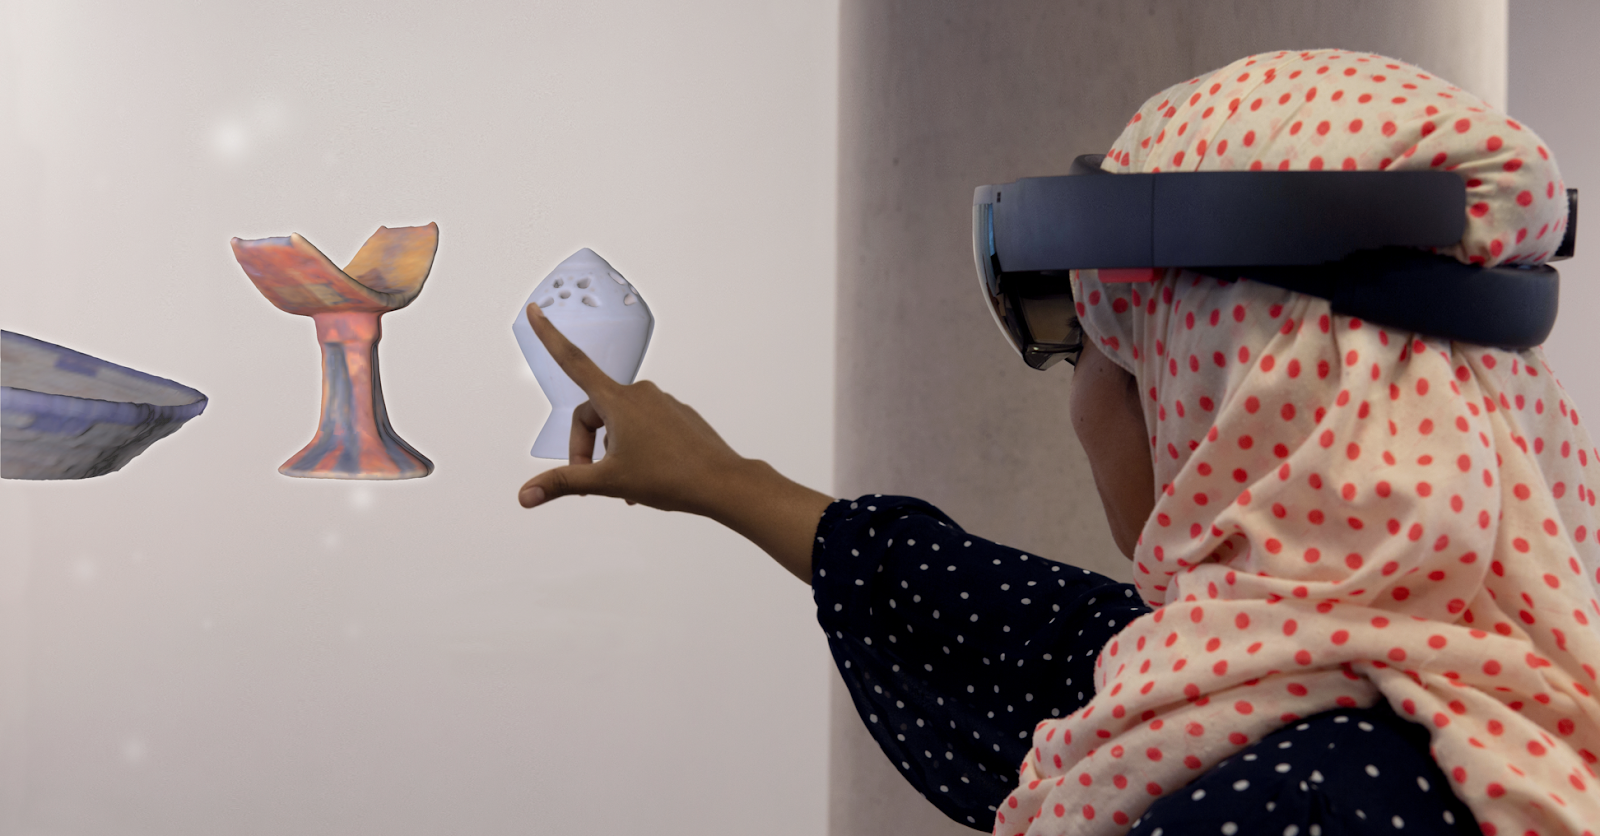 Photo of a person wearing an AR headset interactive with holographic objects